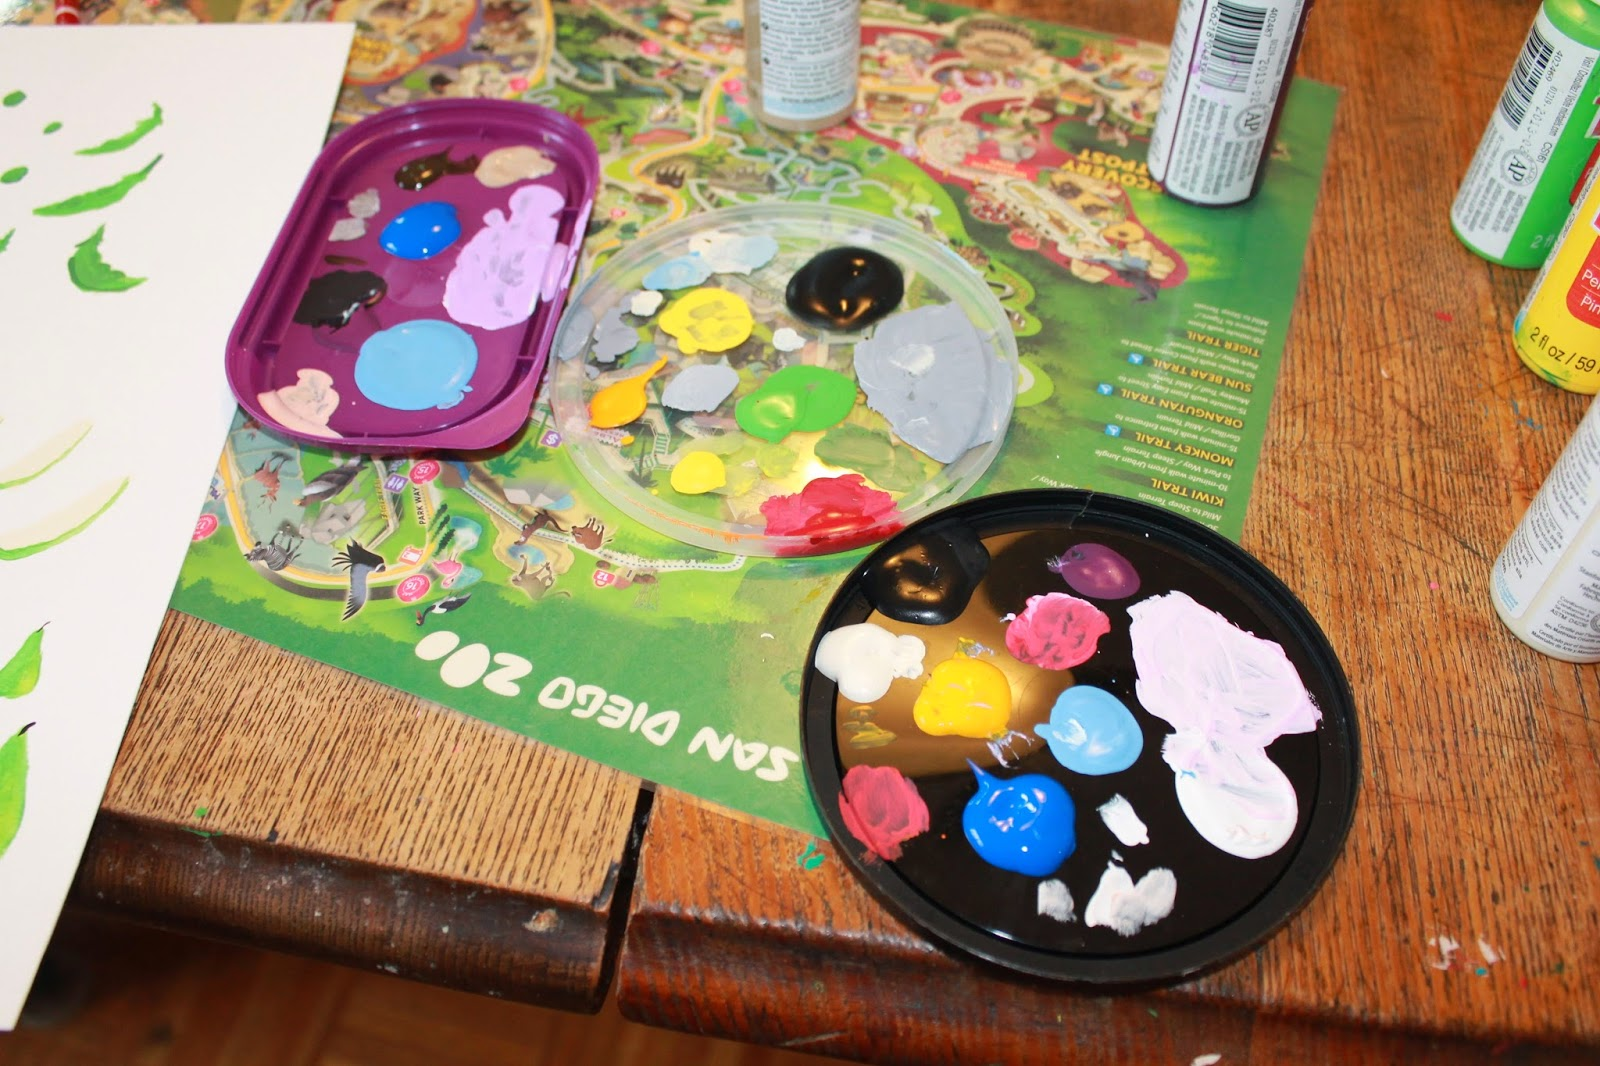 Plastic lids as painting palettes via ericvr.com